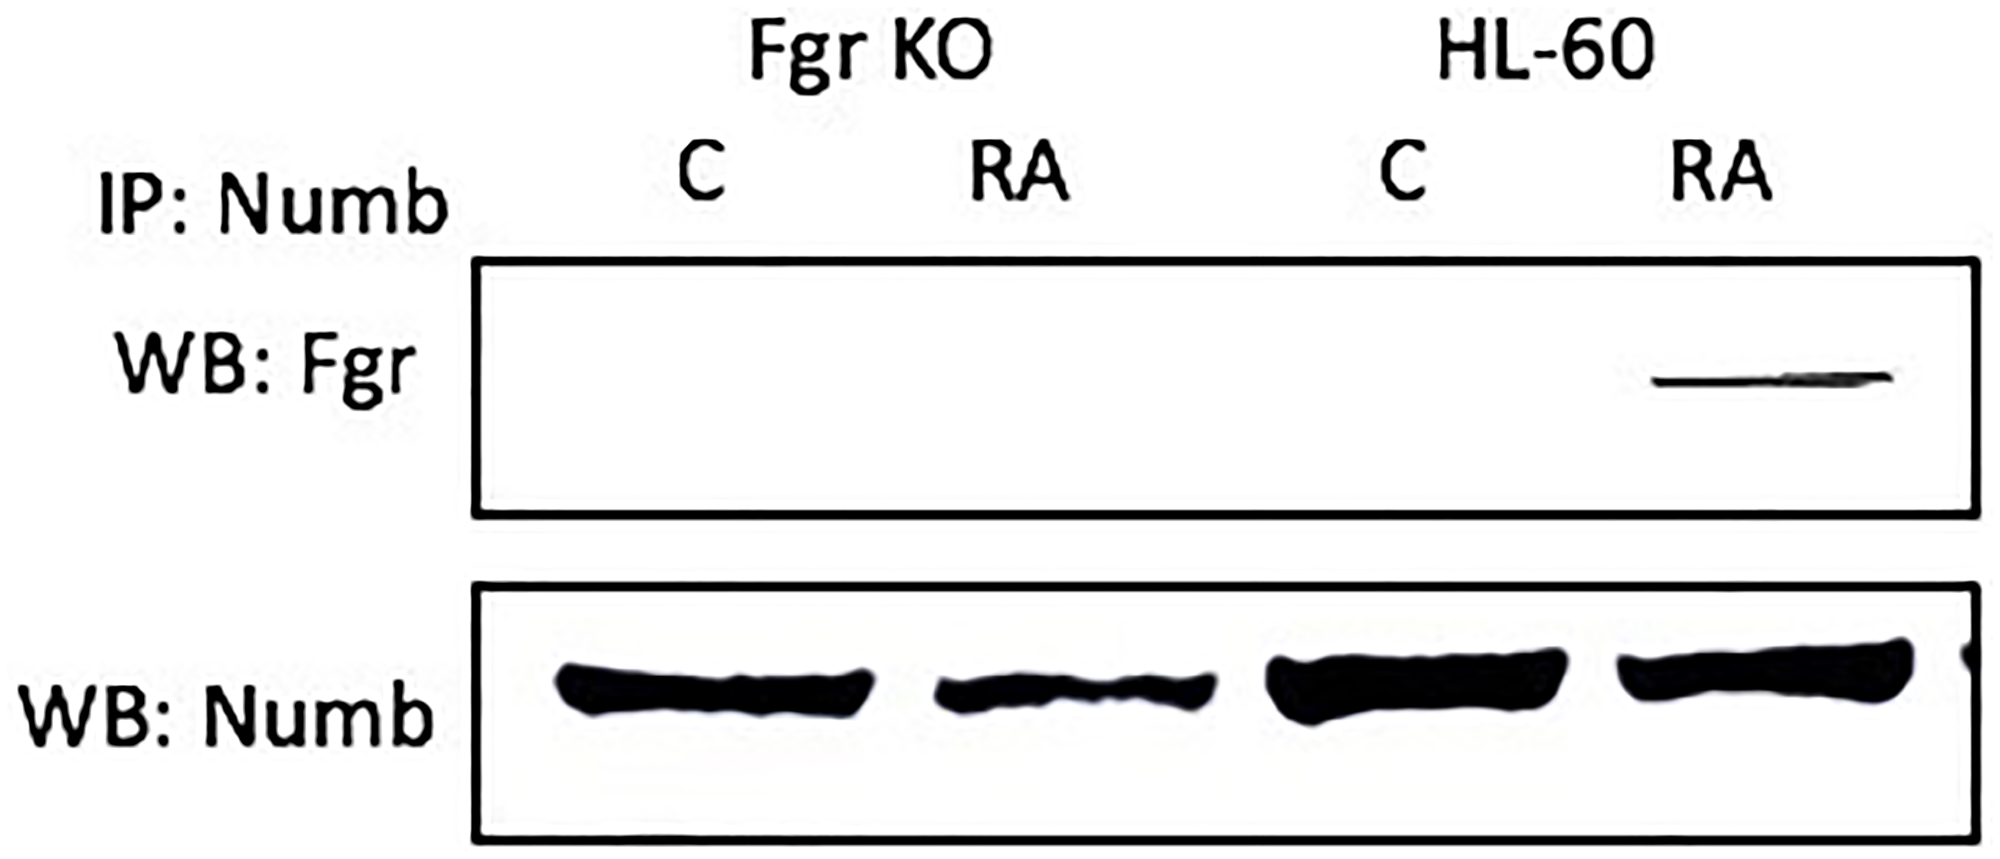 The NUMB-FGR interaction assessed by immunoprecipitation.